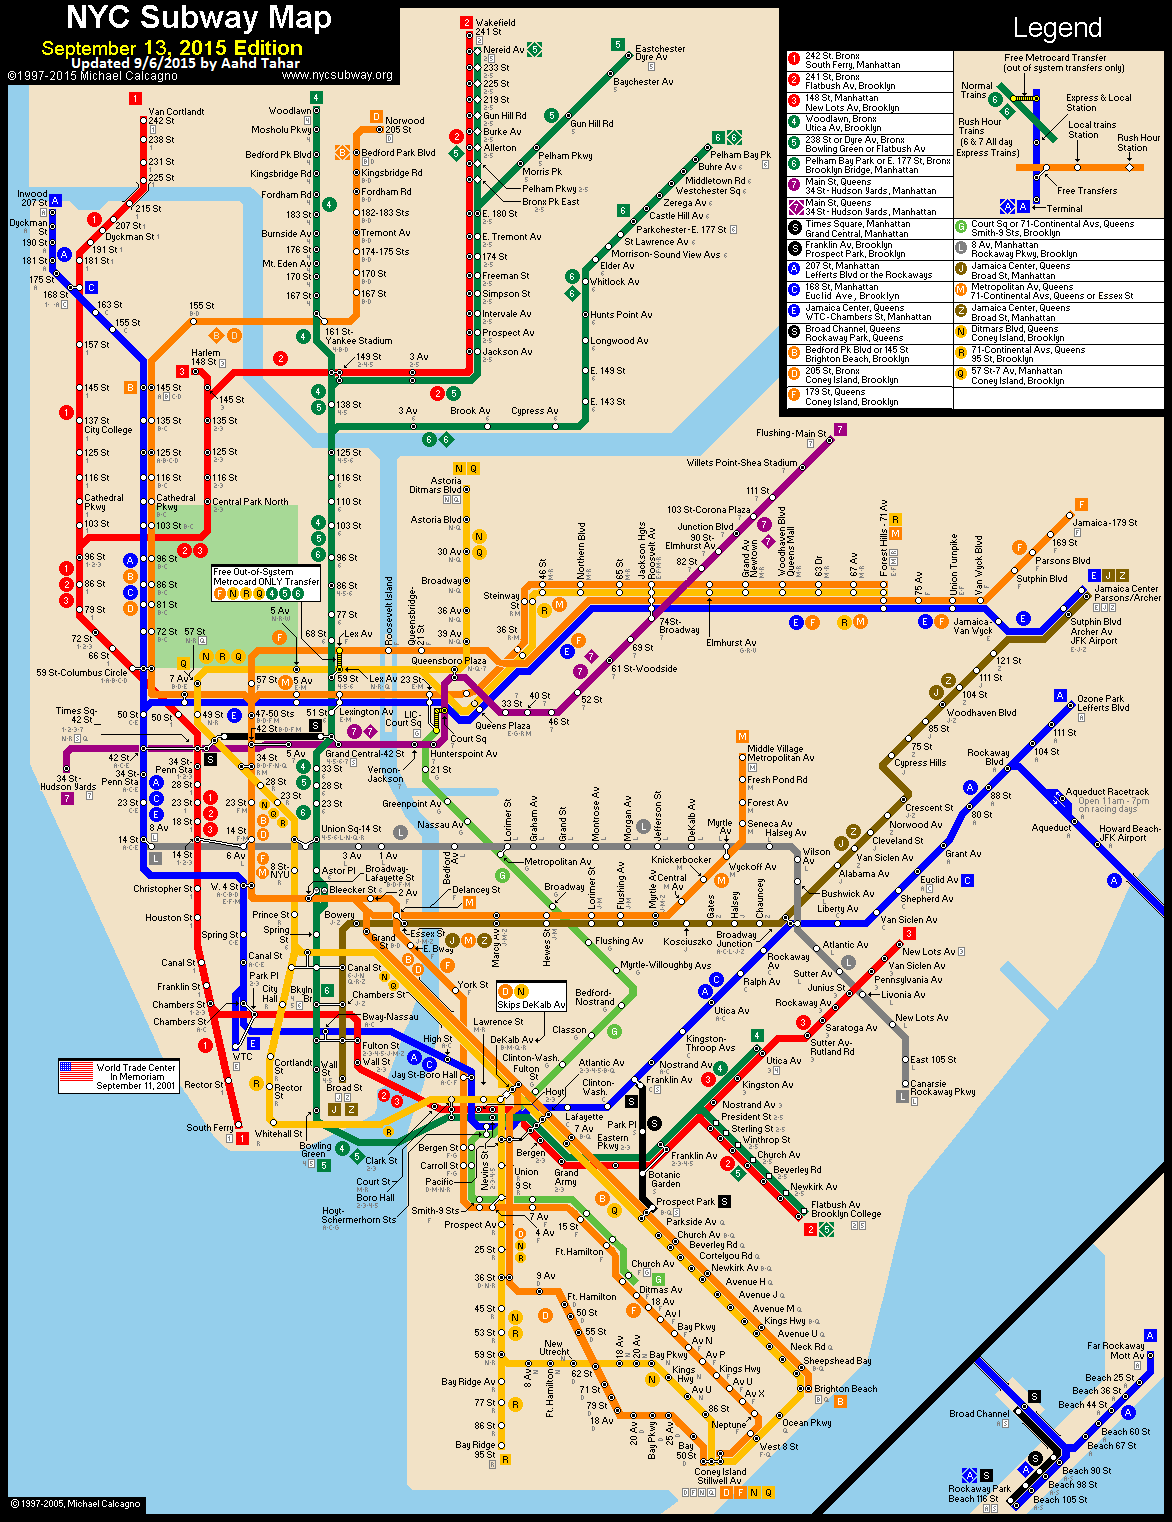 1900 Subway Map New York City.Here S What Ottawa S Lrt Will Look Like Compared To Other Rapid